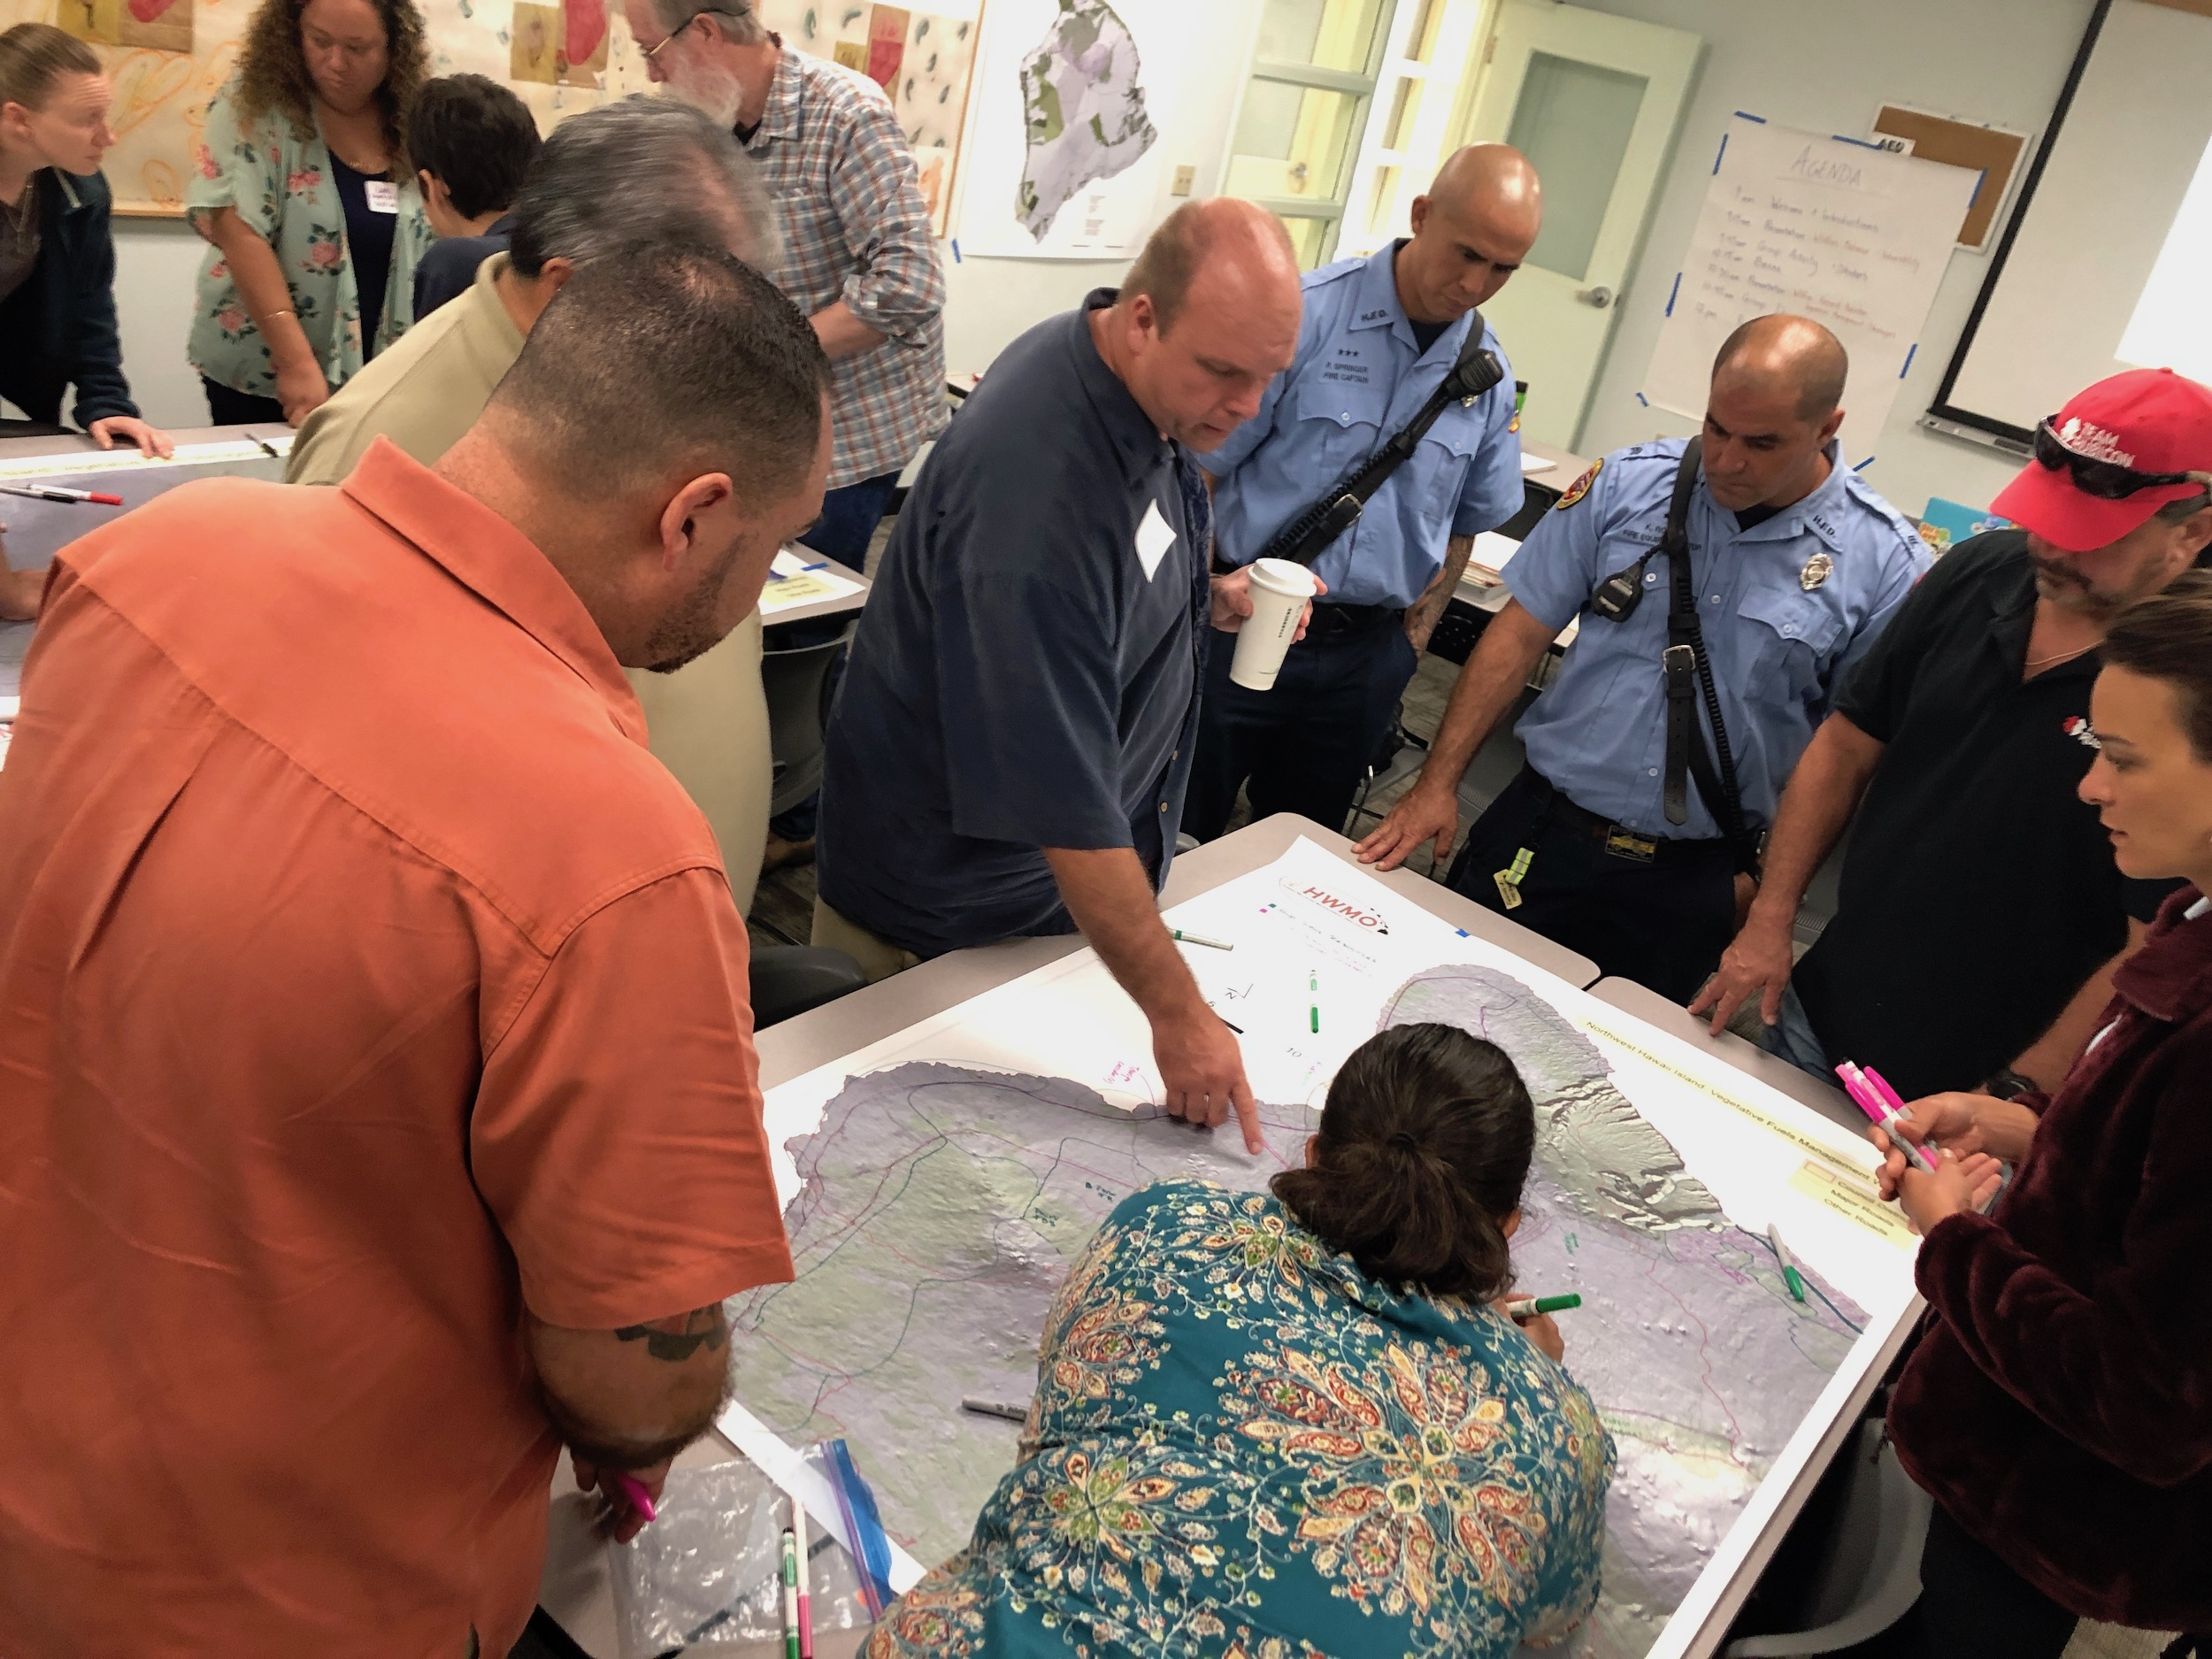 Hawaii Island Hilo Vegetative Fuels Management Collaborative Action Planning Workshop_2_22_2019_19.jpg